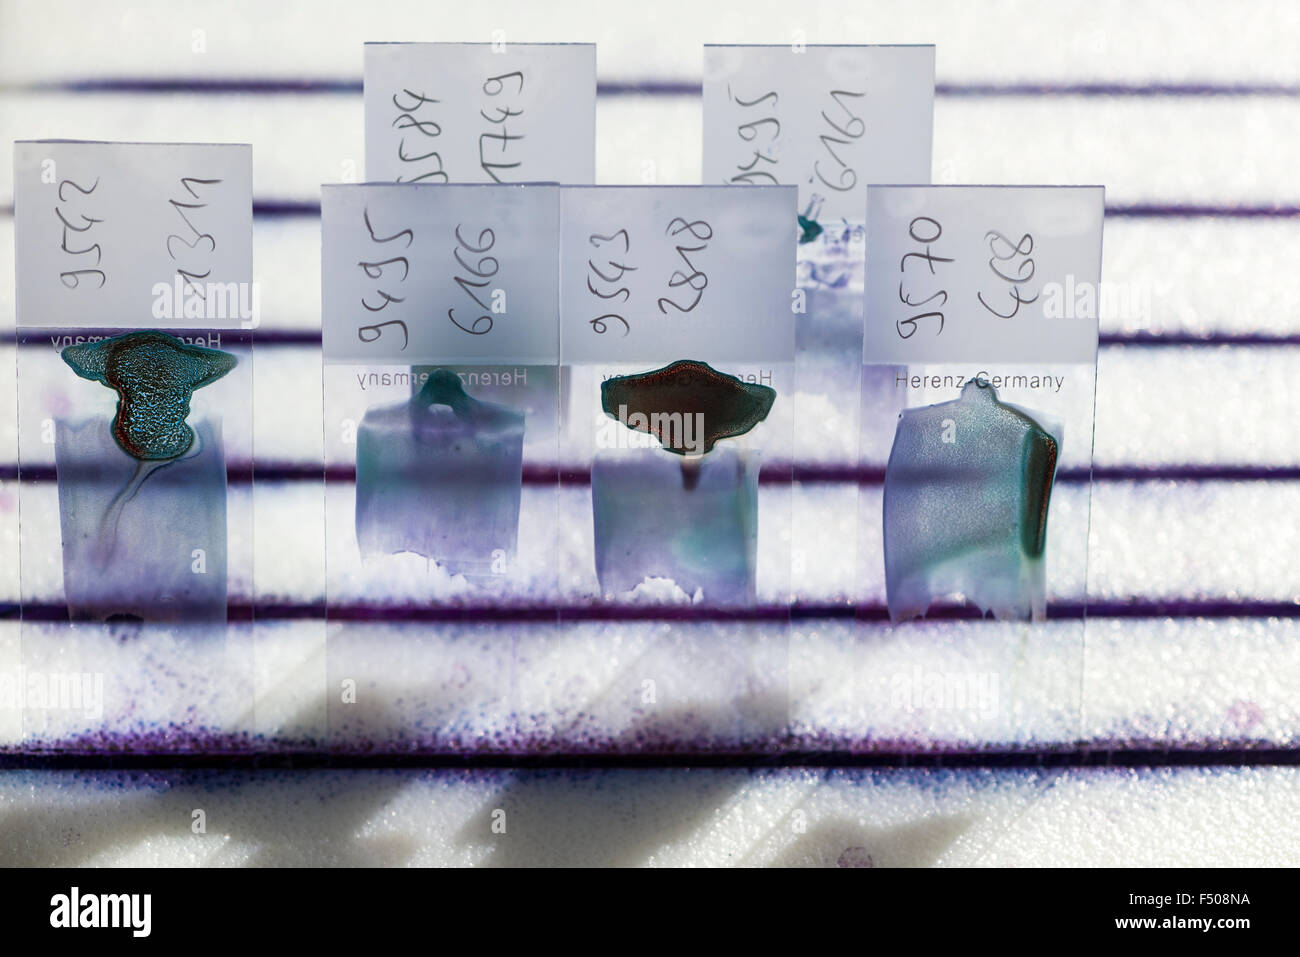 Blood is smeared on glass slides for diagnosis of the blood count, the haemogram - Stock Image